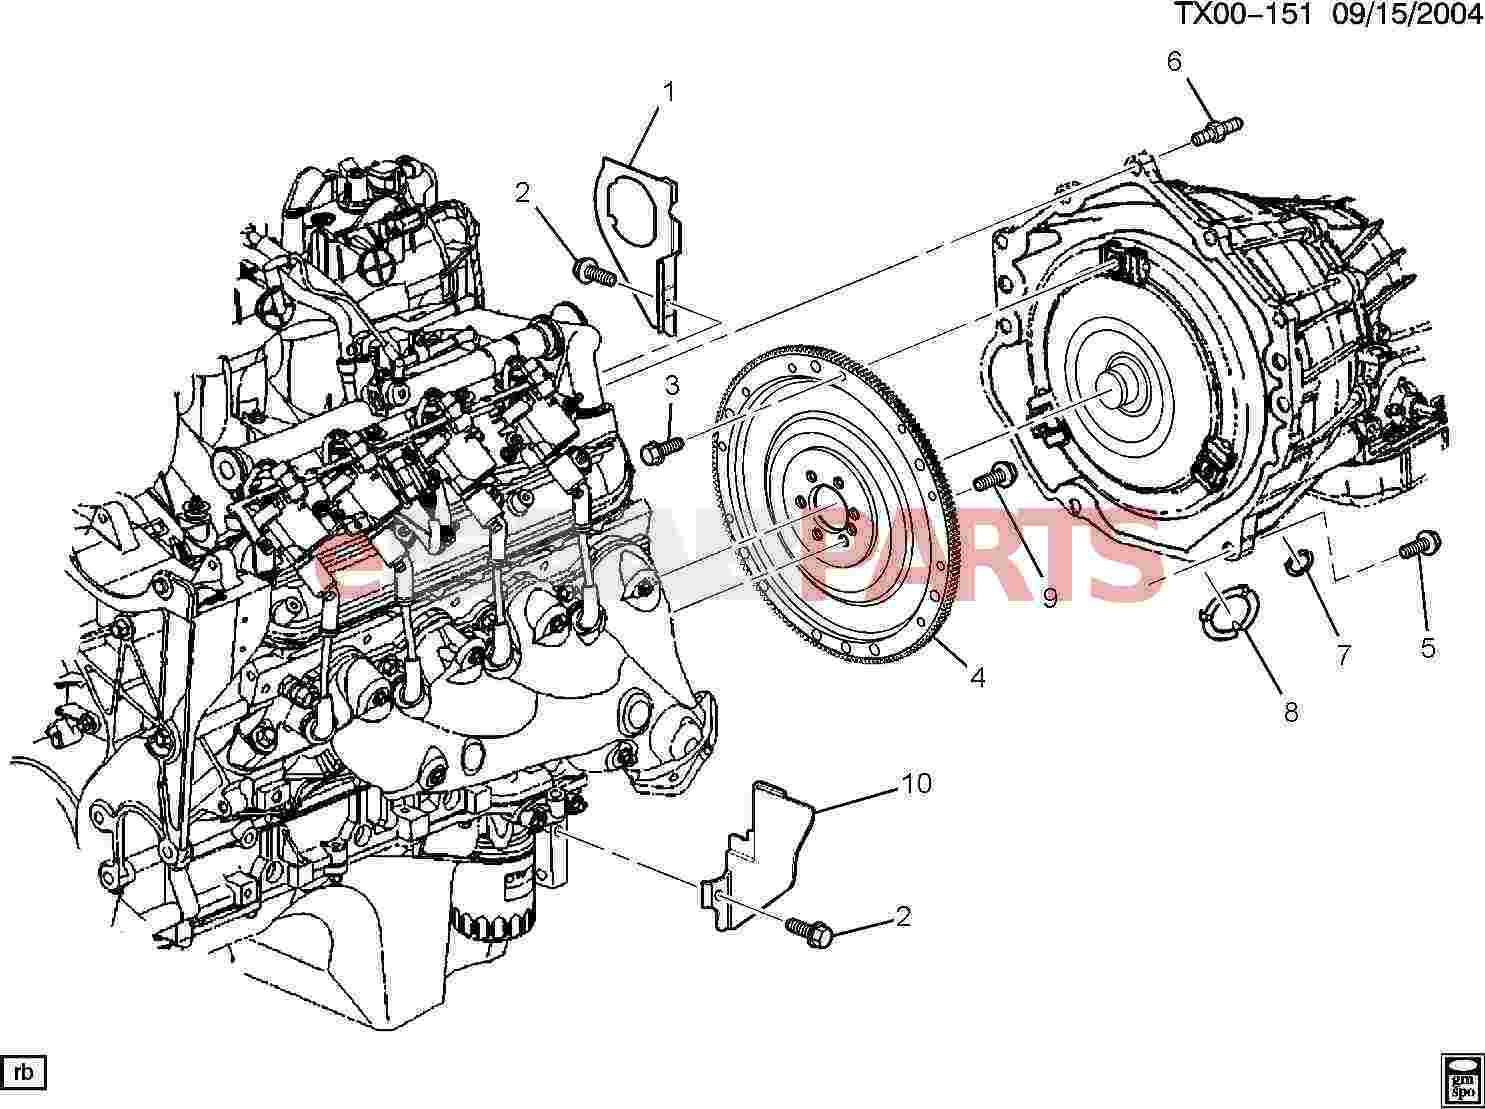 2002 Nissan Frontier Parts Diagram as well P0496 moreover 2003 Dodge Thermostat Replacement further Knock Sensor Harness Besides 2004 Nissan Xterra furthermore Showthread. on 2003 saab 9 3